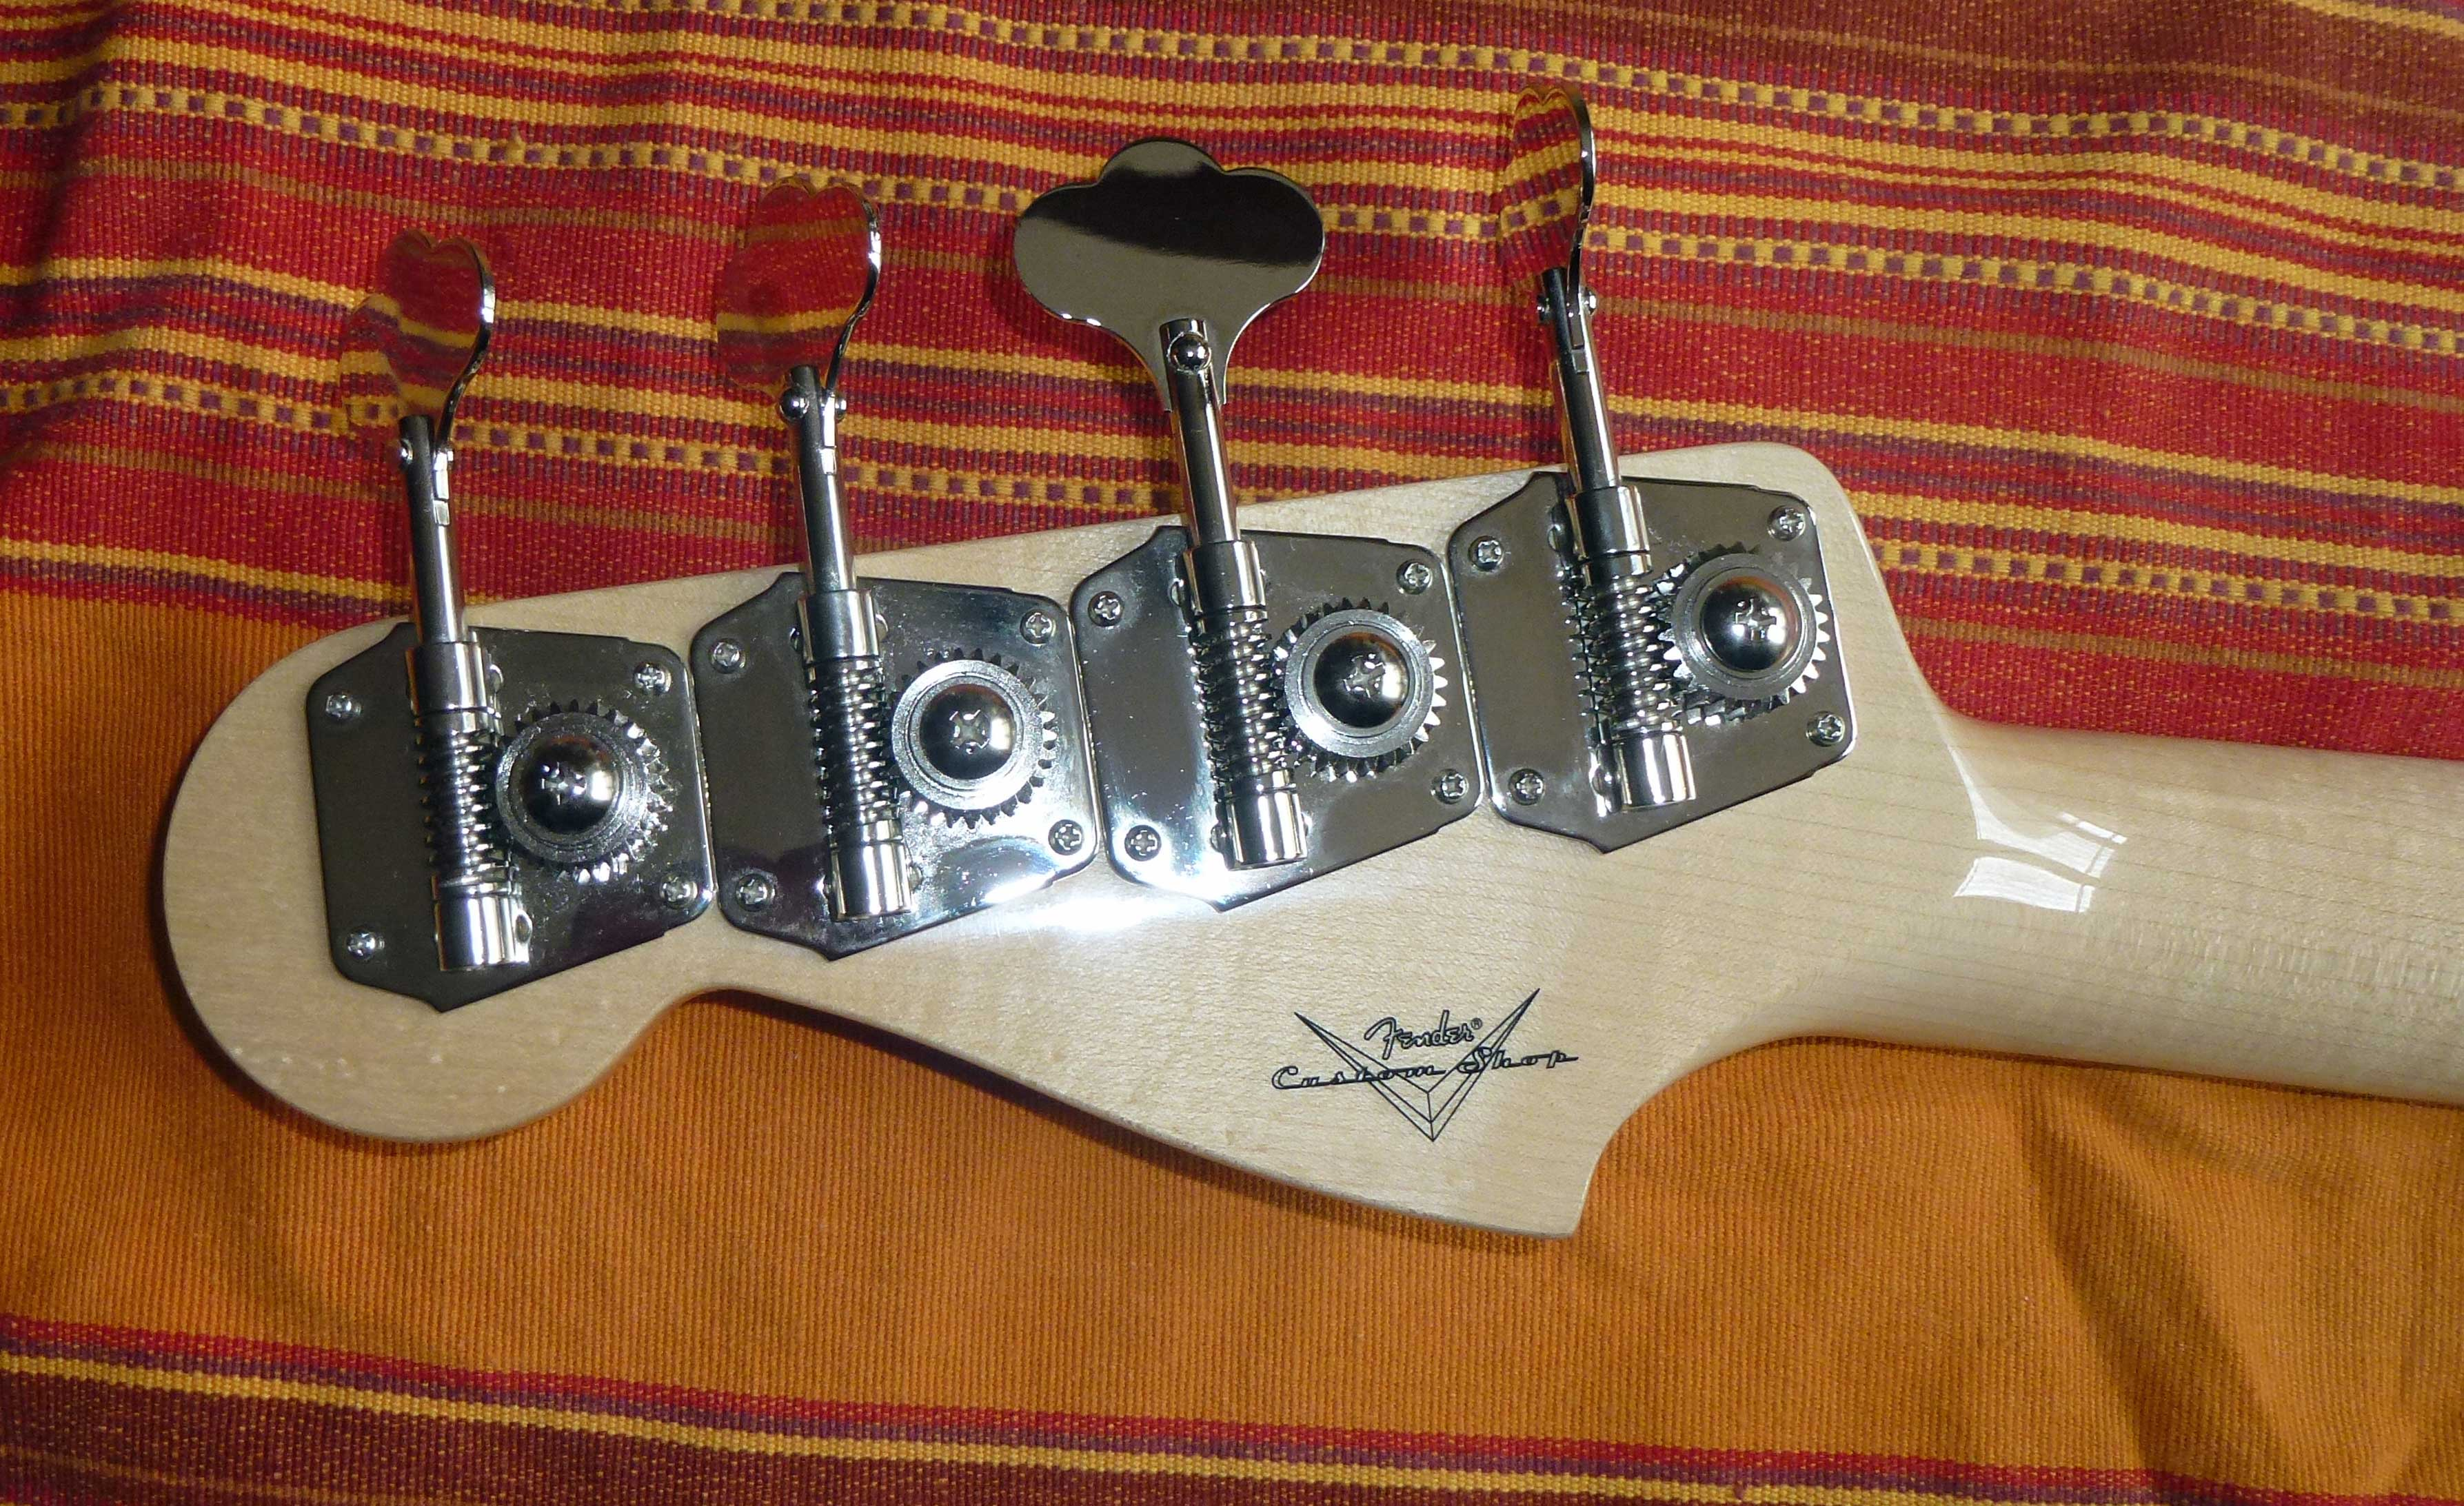 Fender Precision - Original ou não ? Fender-custom-shop-59-nos-precision-bass-446267